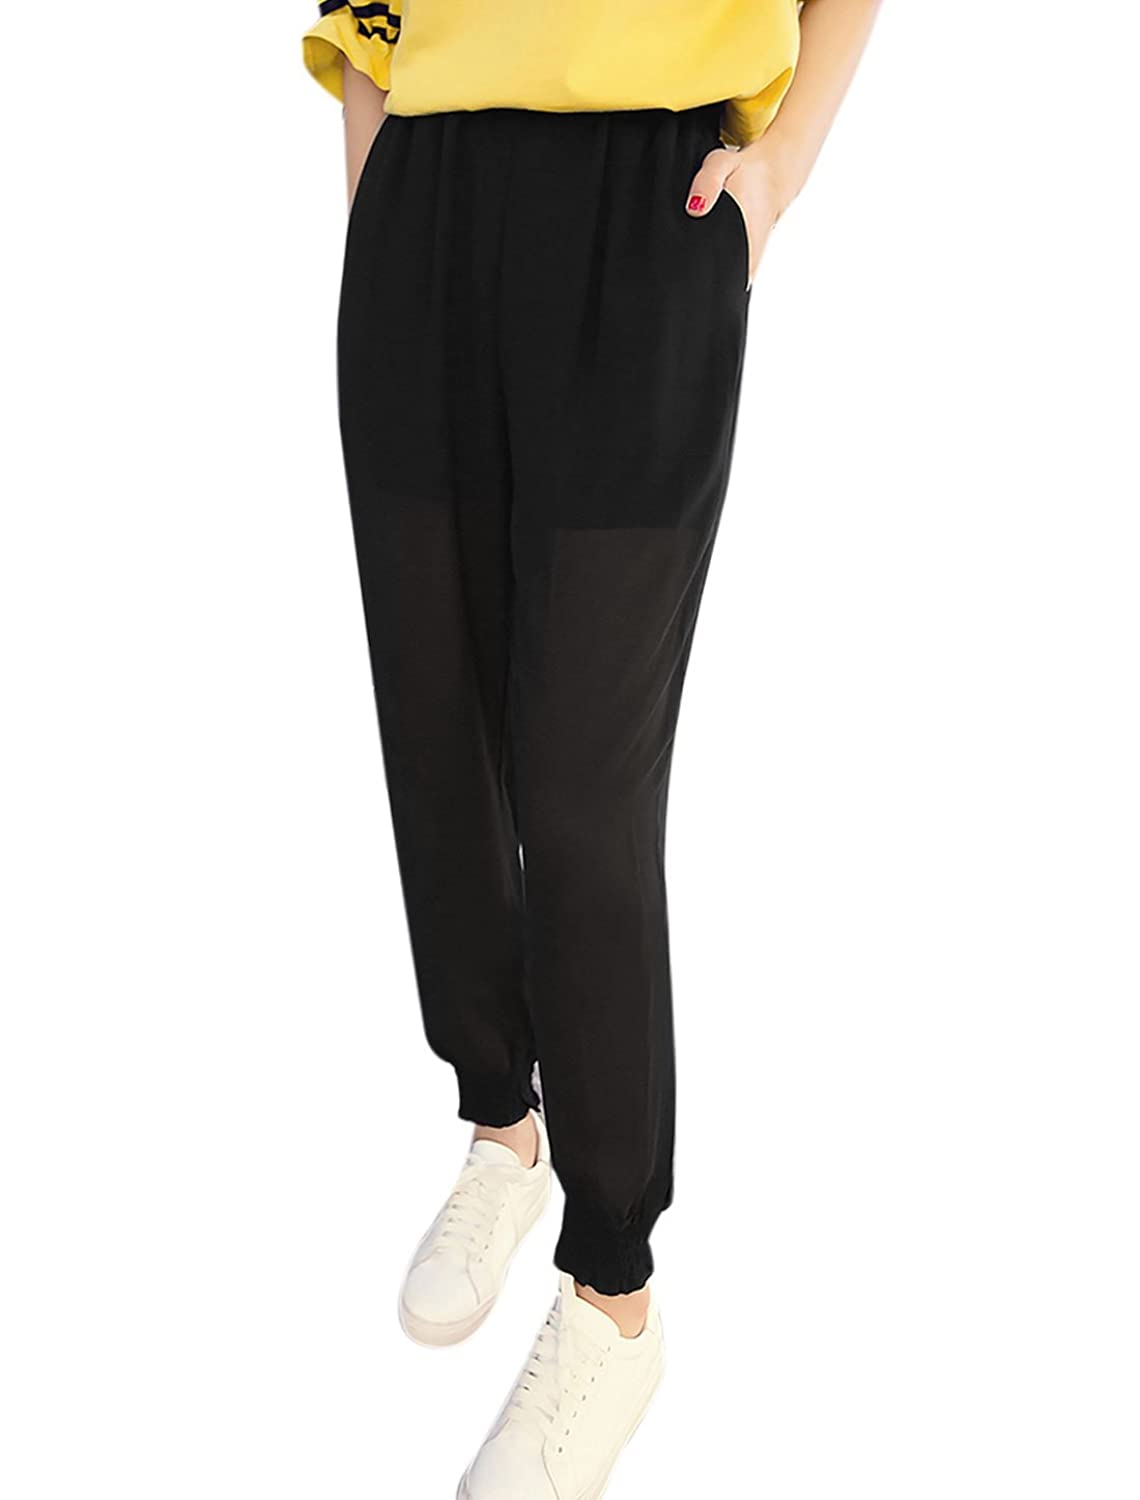 uxcell Women Smocked Cuffs Semi Sheer Tapered Loose Pants